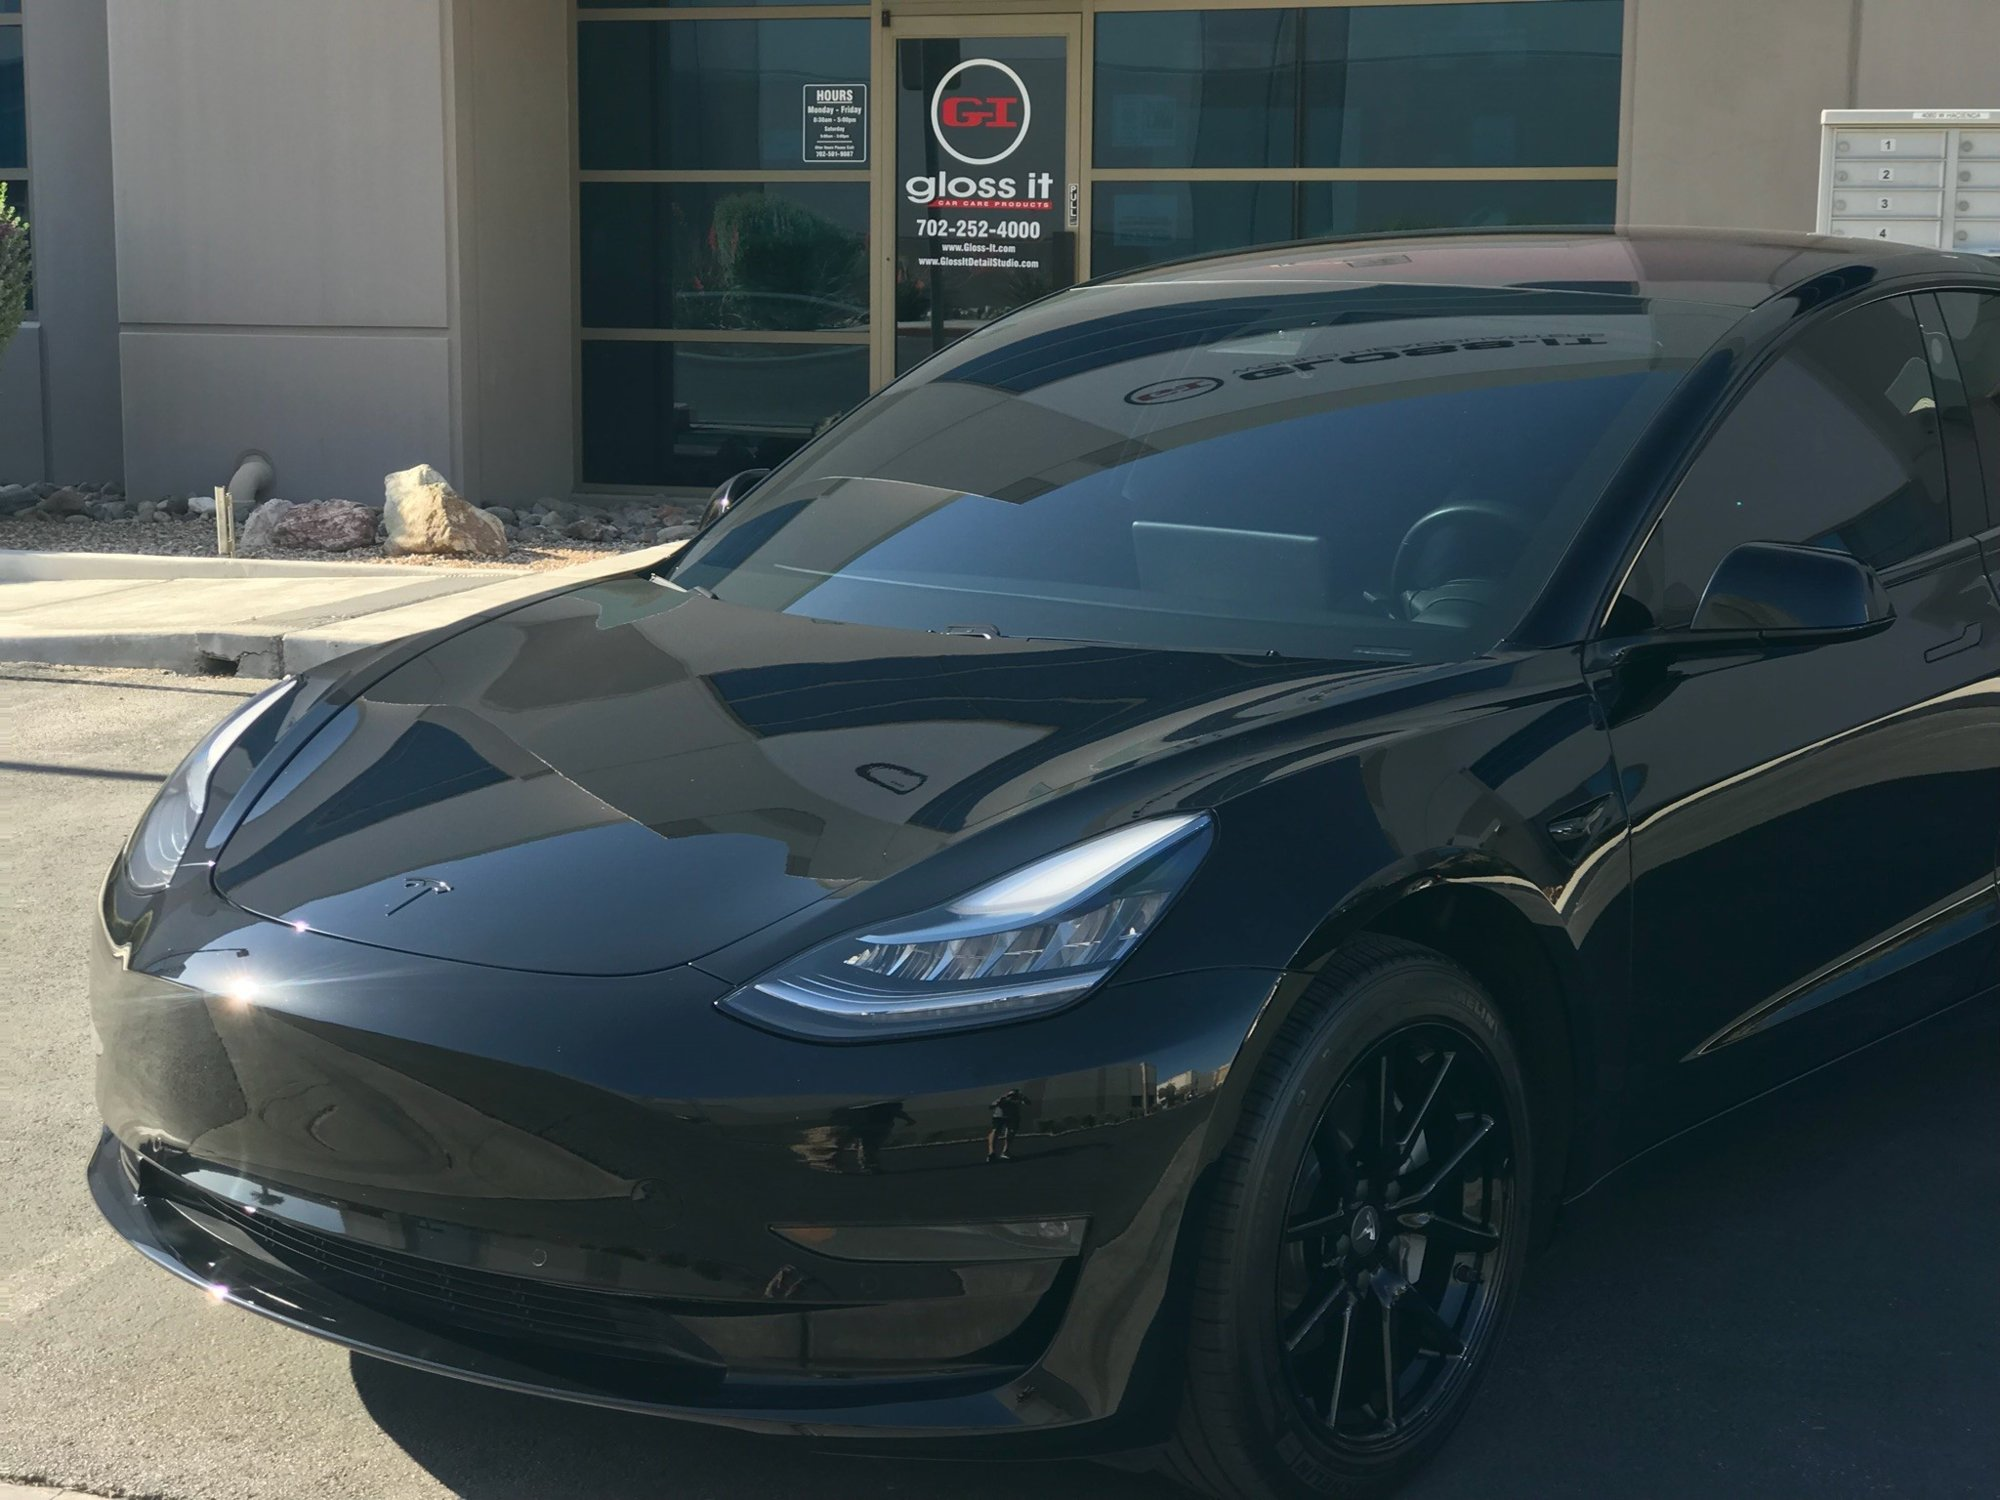 Tesla Model 3 after GlossIt.jpg